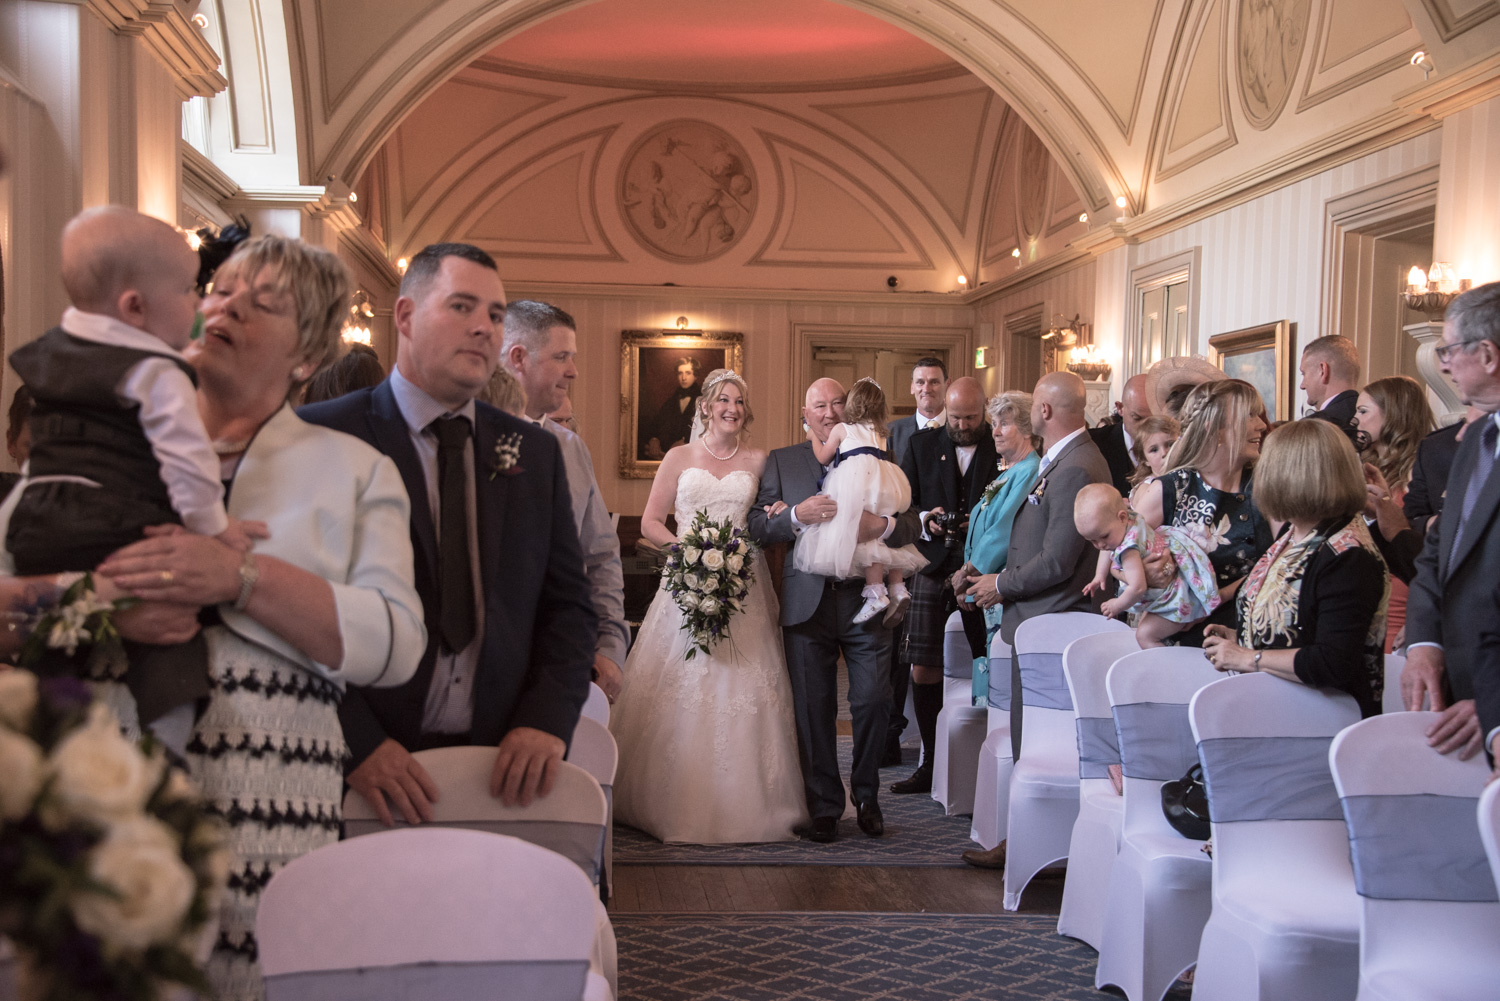 Weddings At Balbirnie House - the aisle in the long gallery